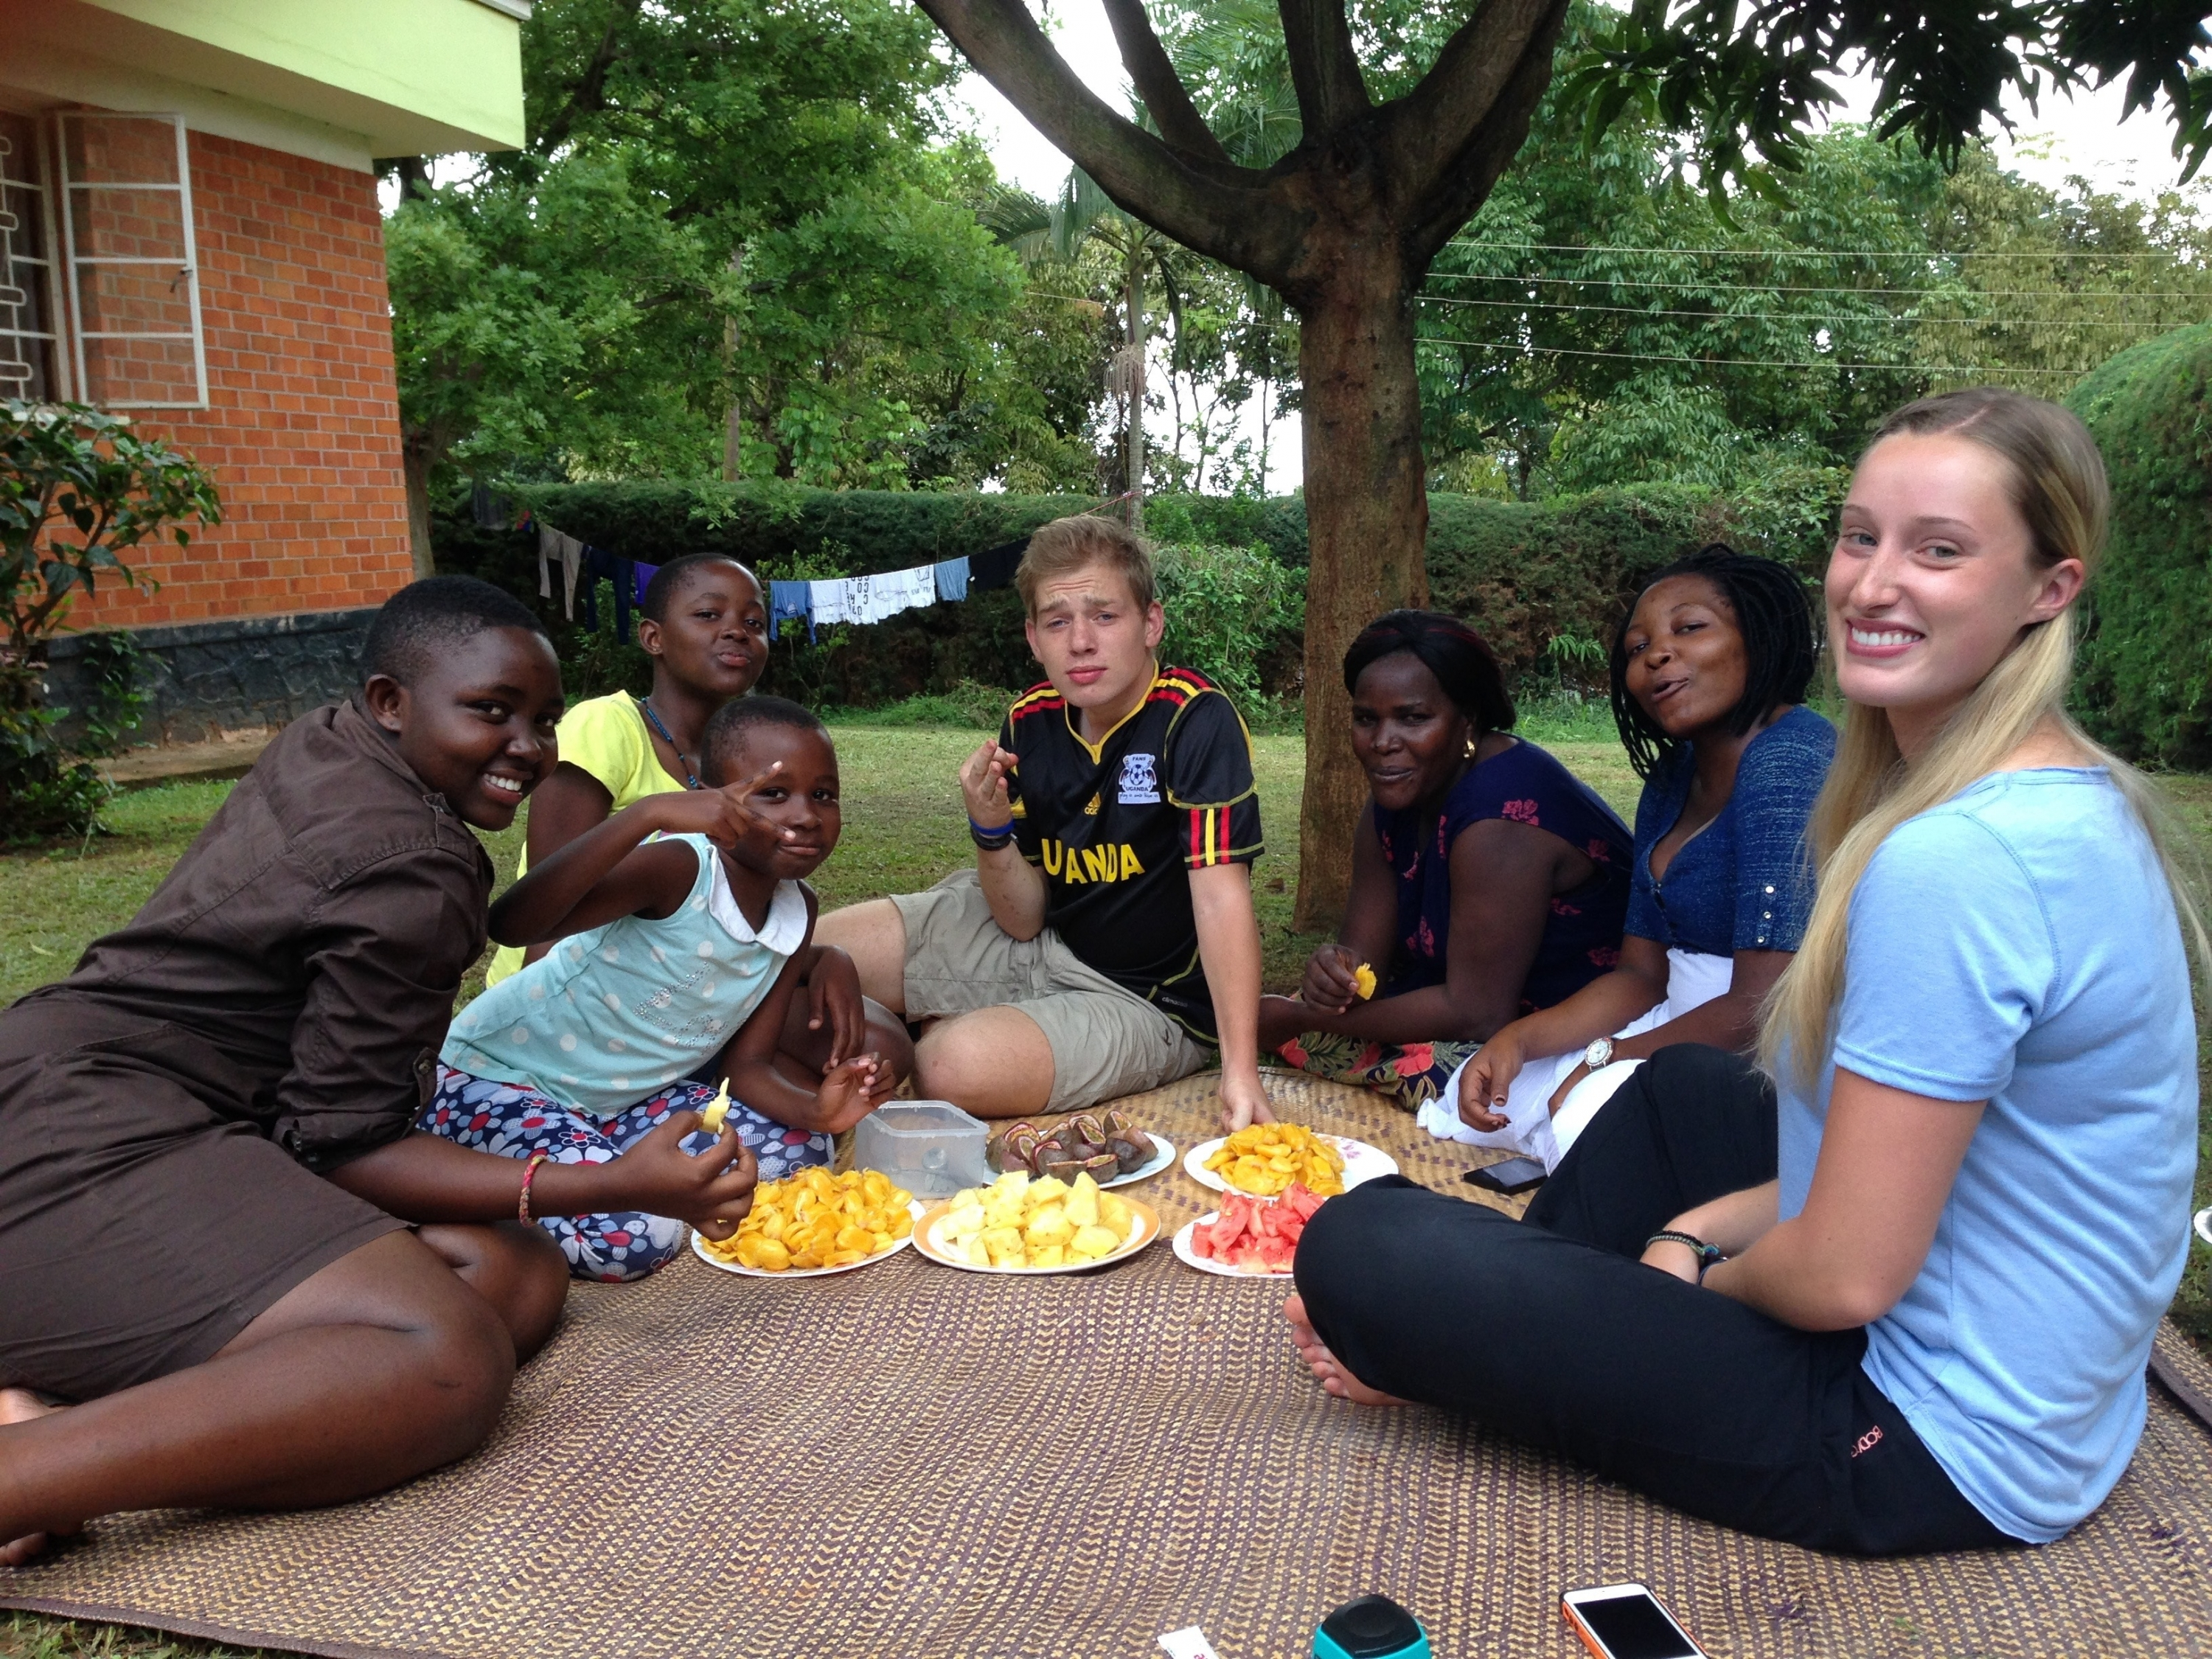 Kayleigh Swanson and friends eating lunch